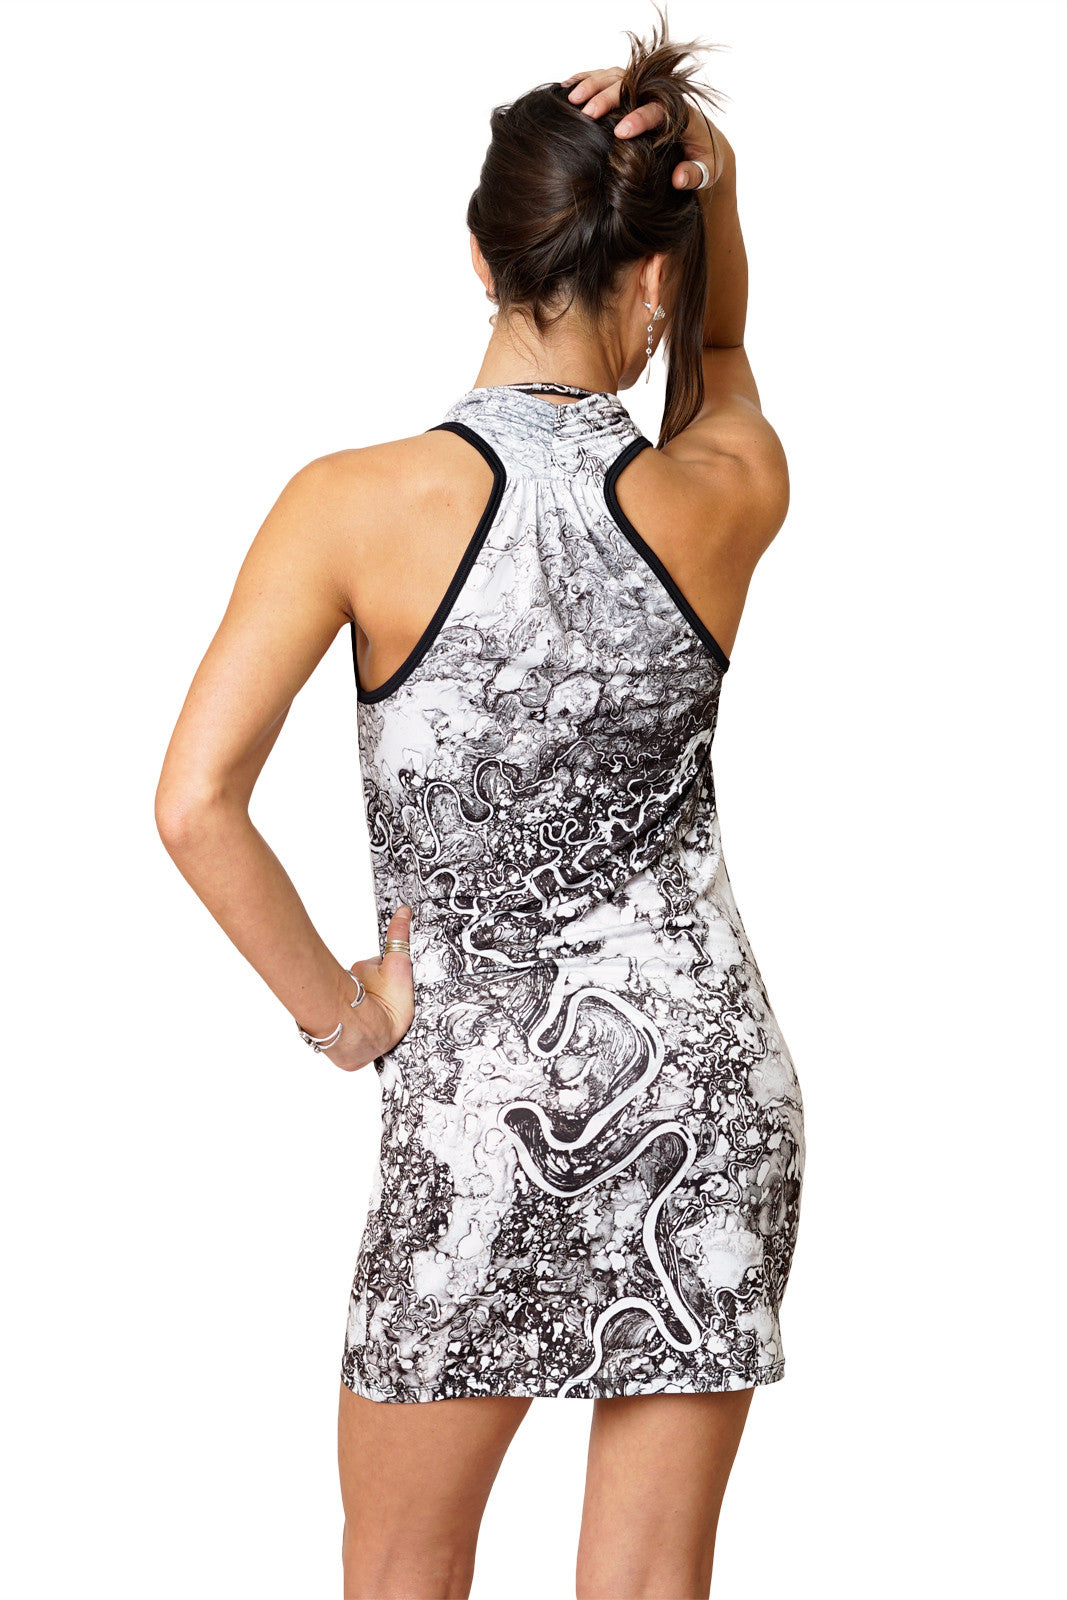 Sleeveless Cowl Neck Dress-Google Earth Clothing-Mayn River-Back View